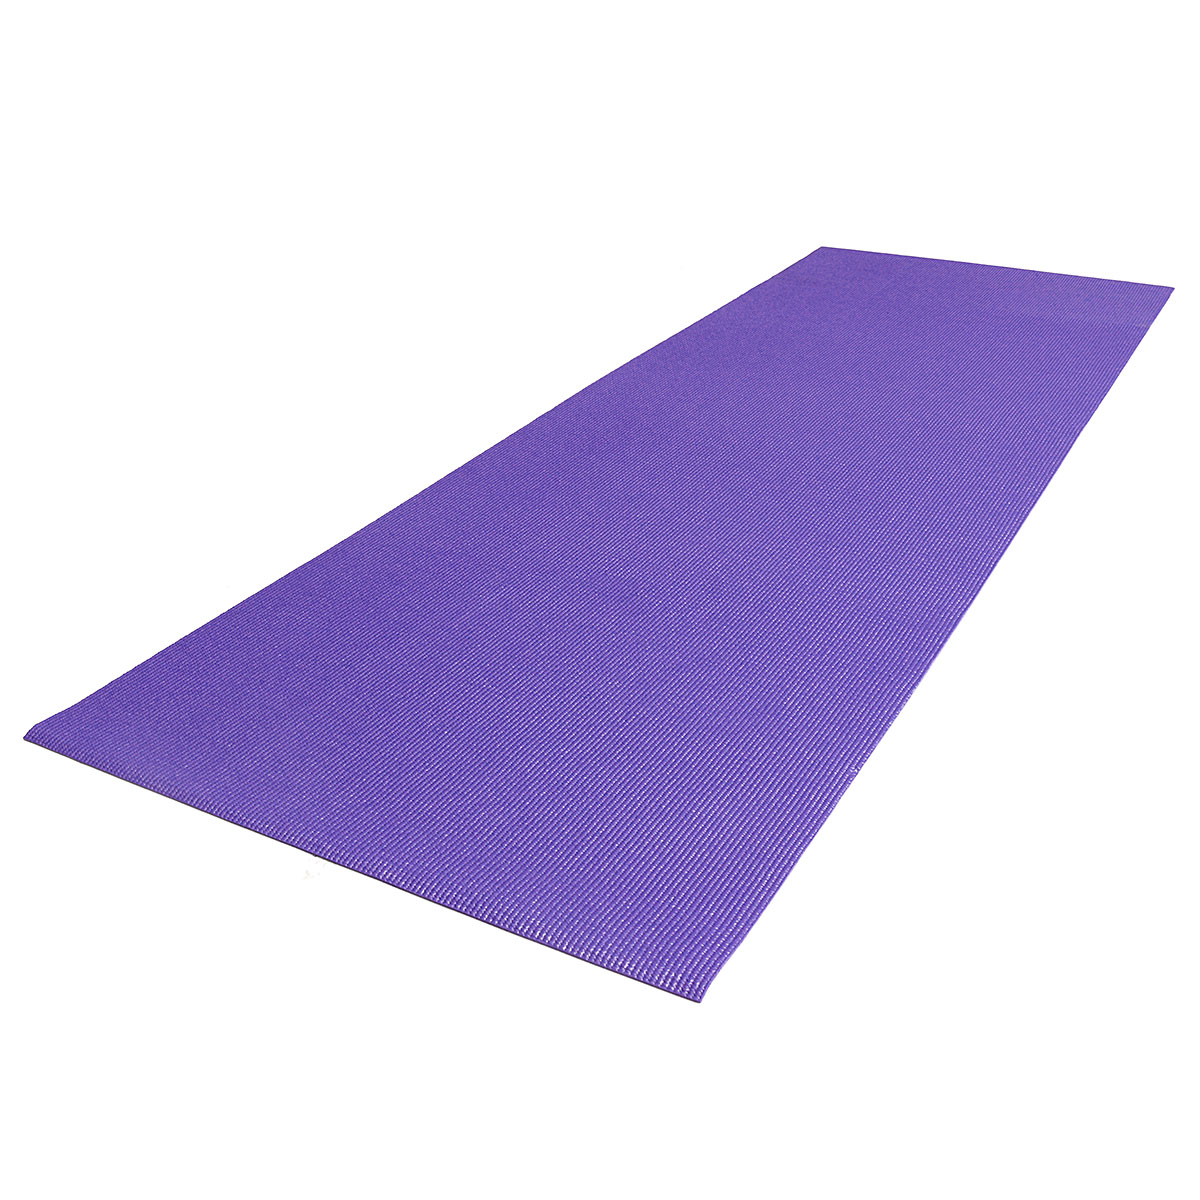 ltt 6mm thick non slip exercise pad yoga mat fitness gym lose weightdurable lazada ph. Black Bedroom Furniture Sets. Home Design Ideas